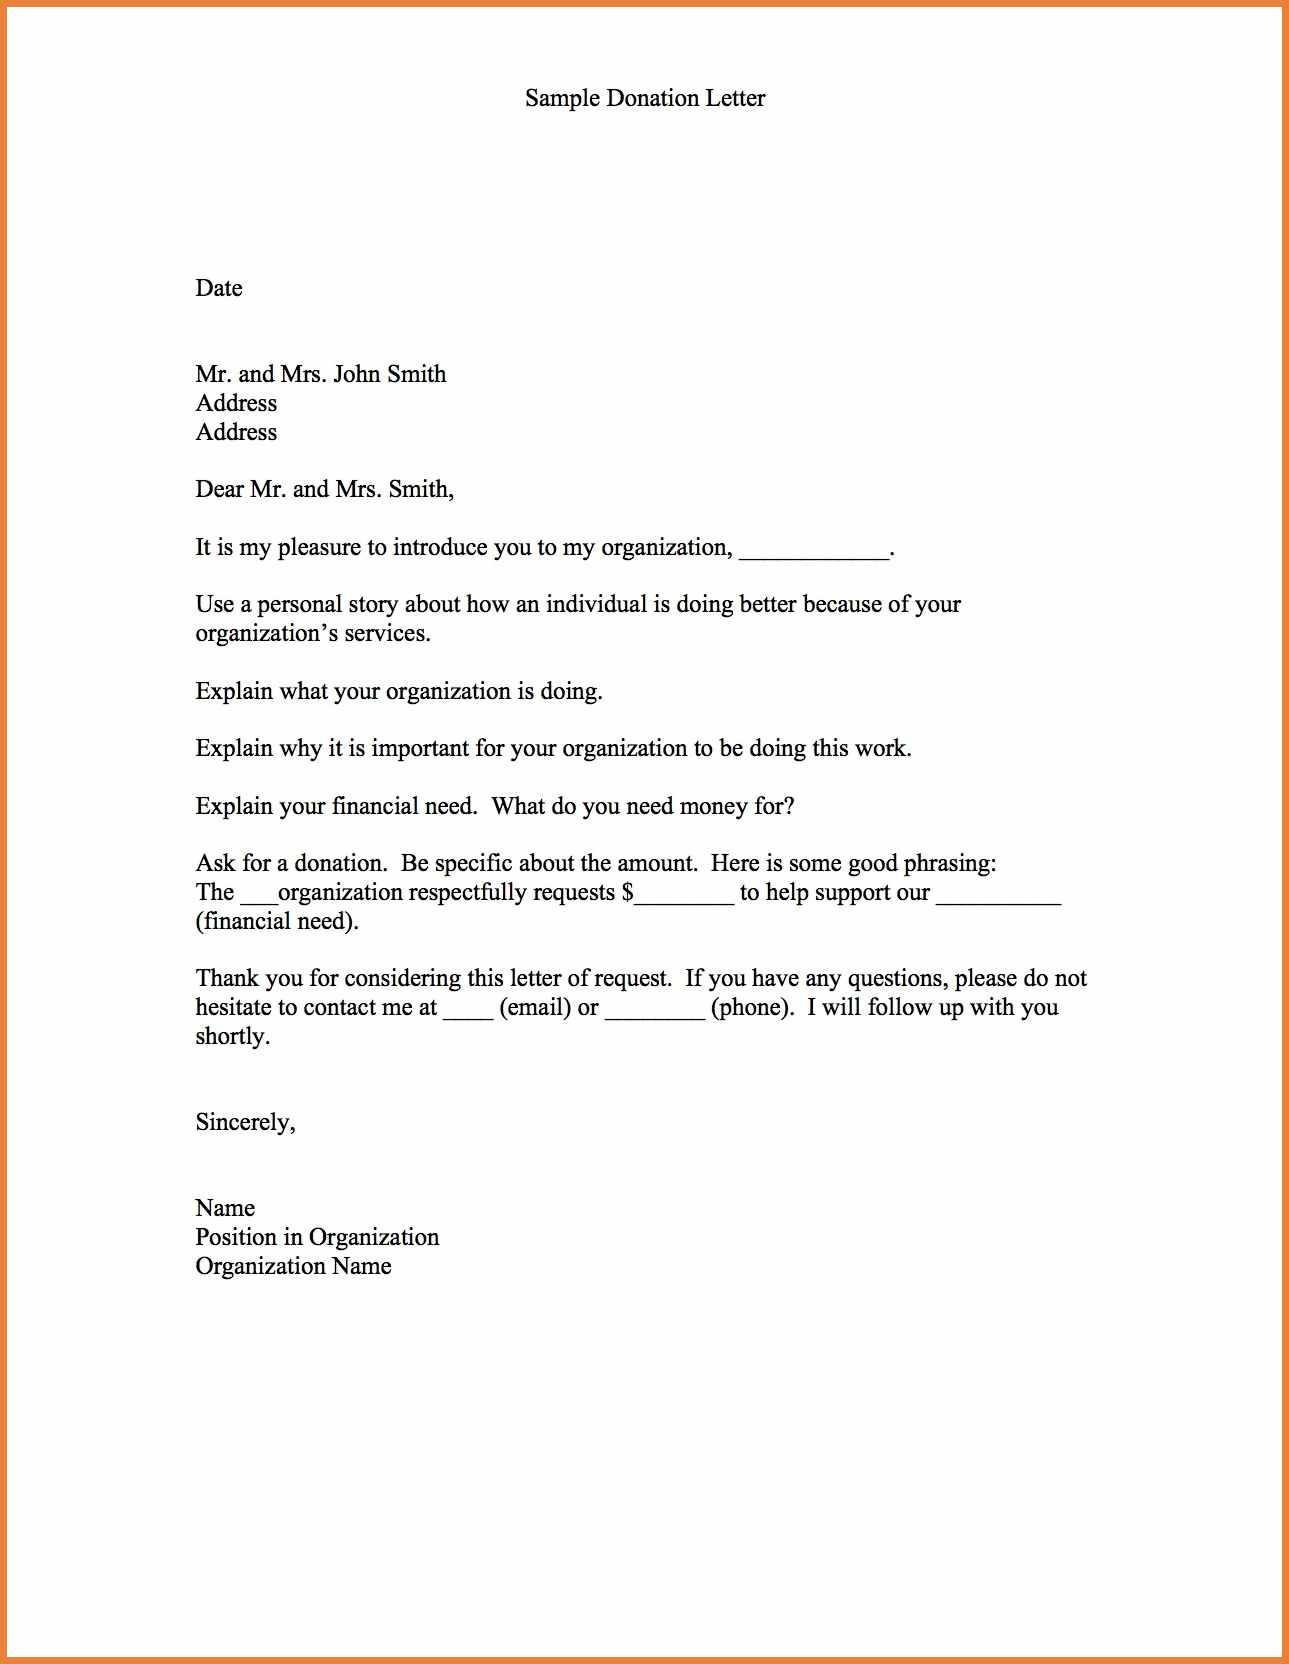 Fundraiser Proposal Letter Template - Letter T Fundraising Template Sample Donation sop Proposal